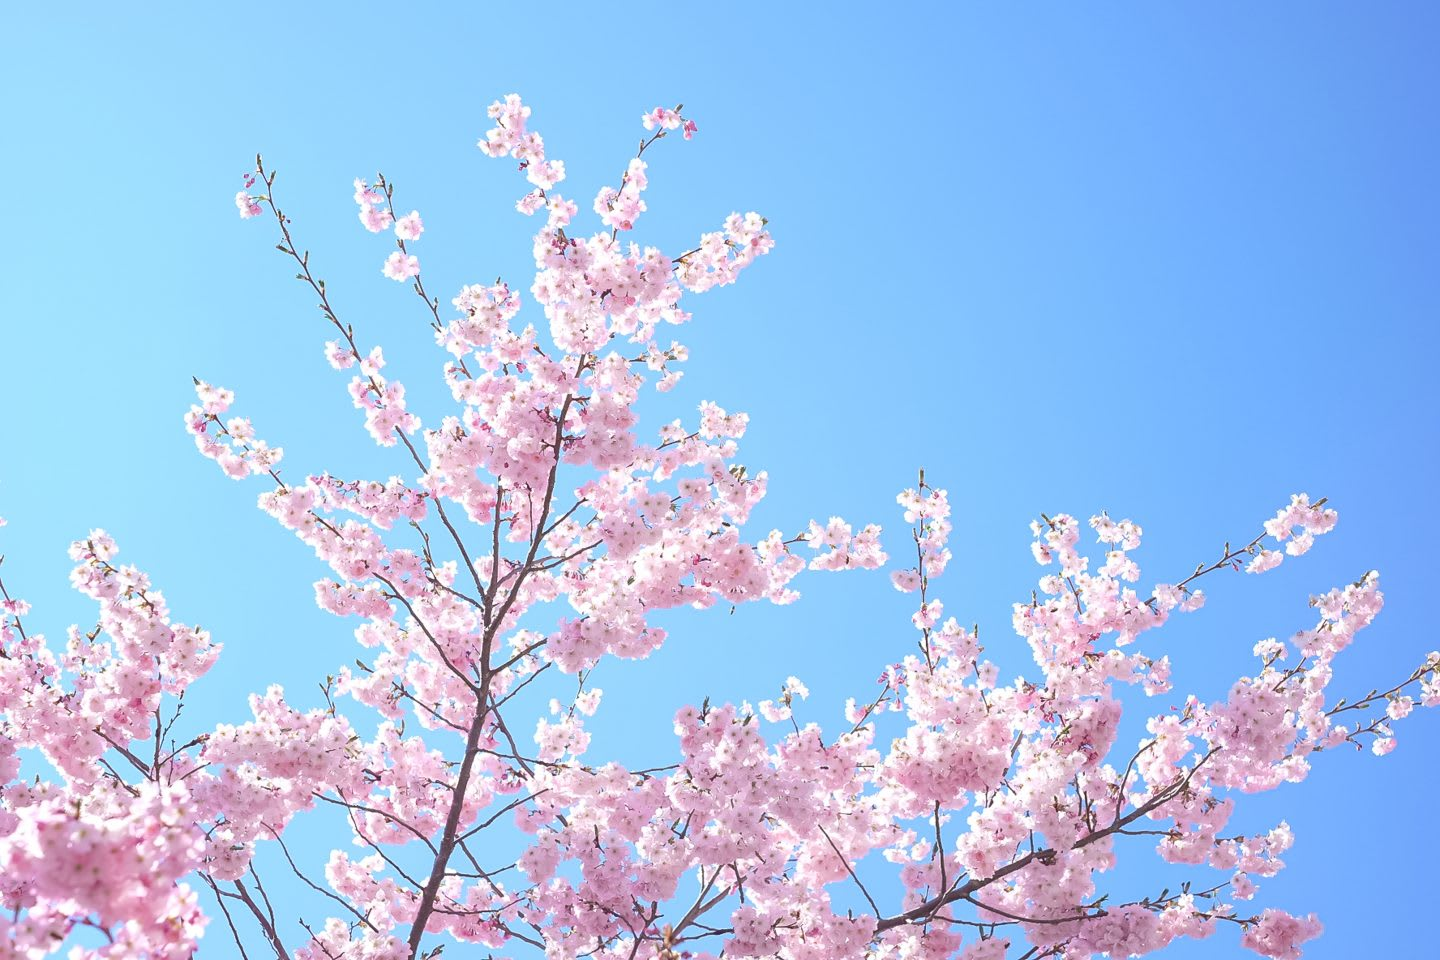 Cherry blossoms on flowering cherry tree against clear blue sky, flowers, blooming, tree, spring, beautiful, nature